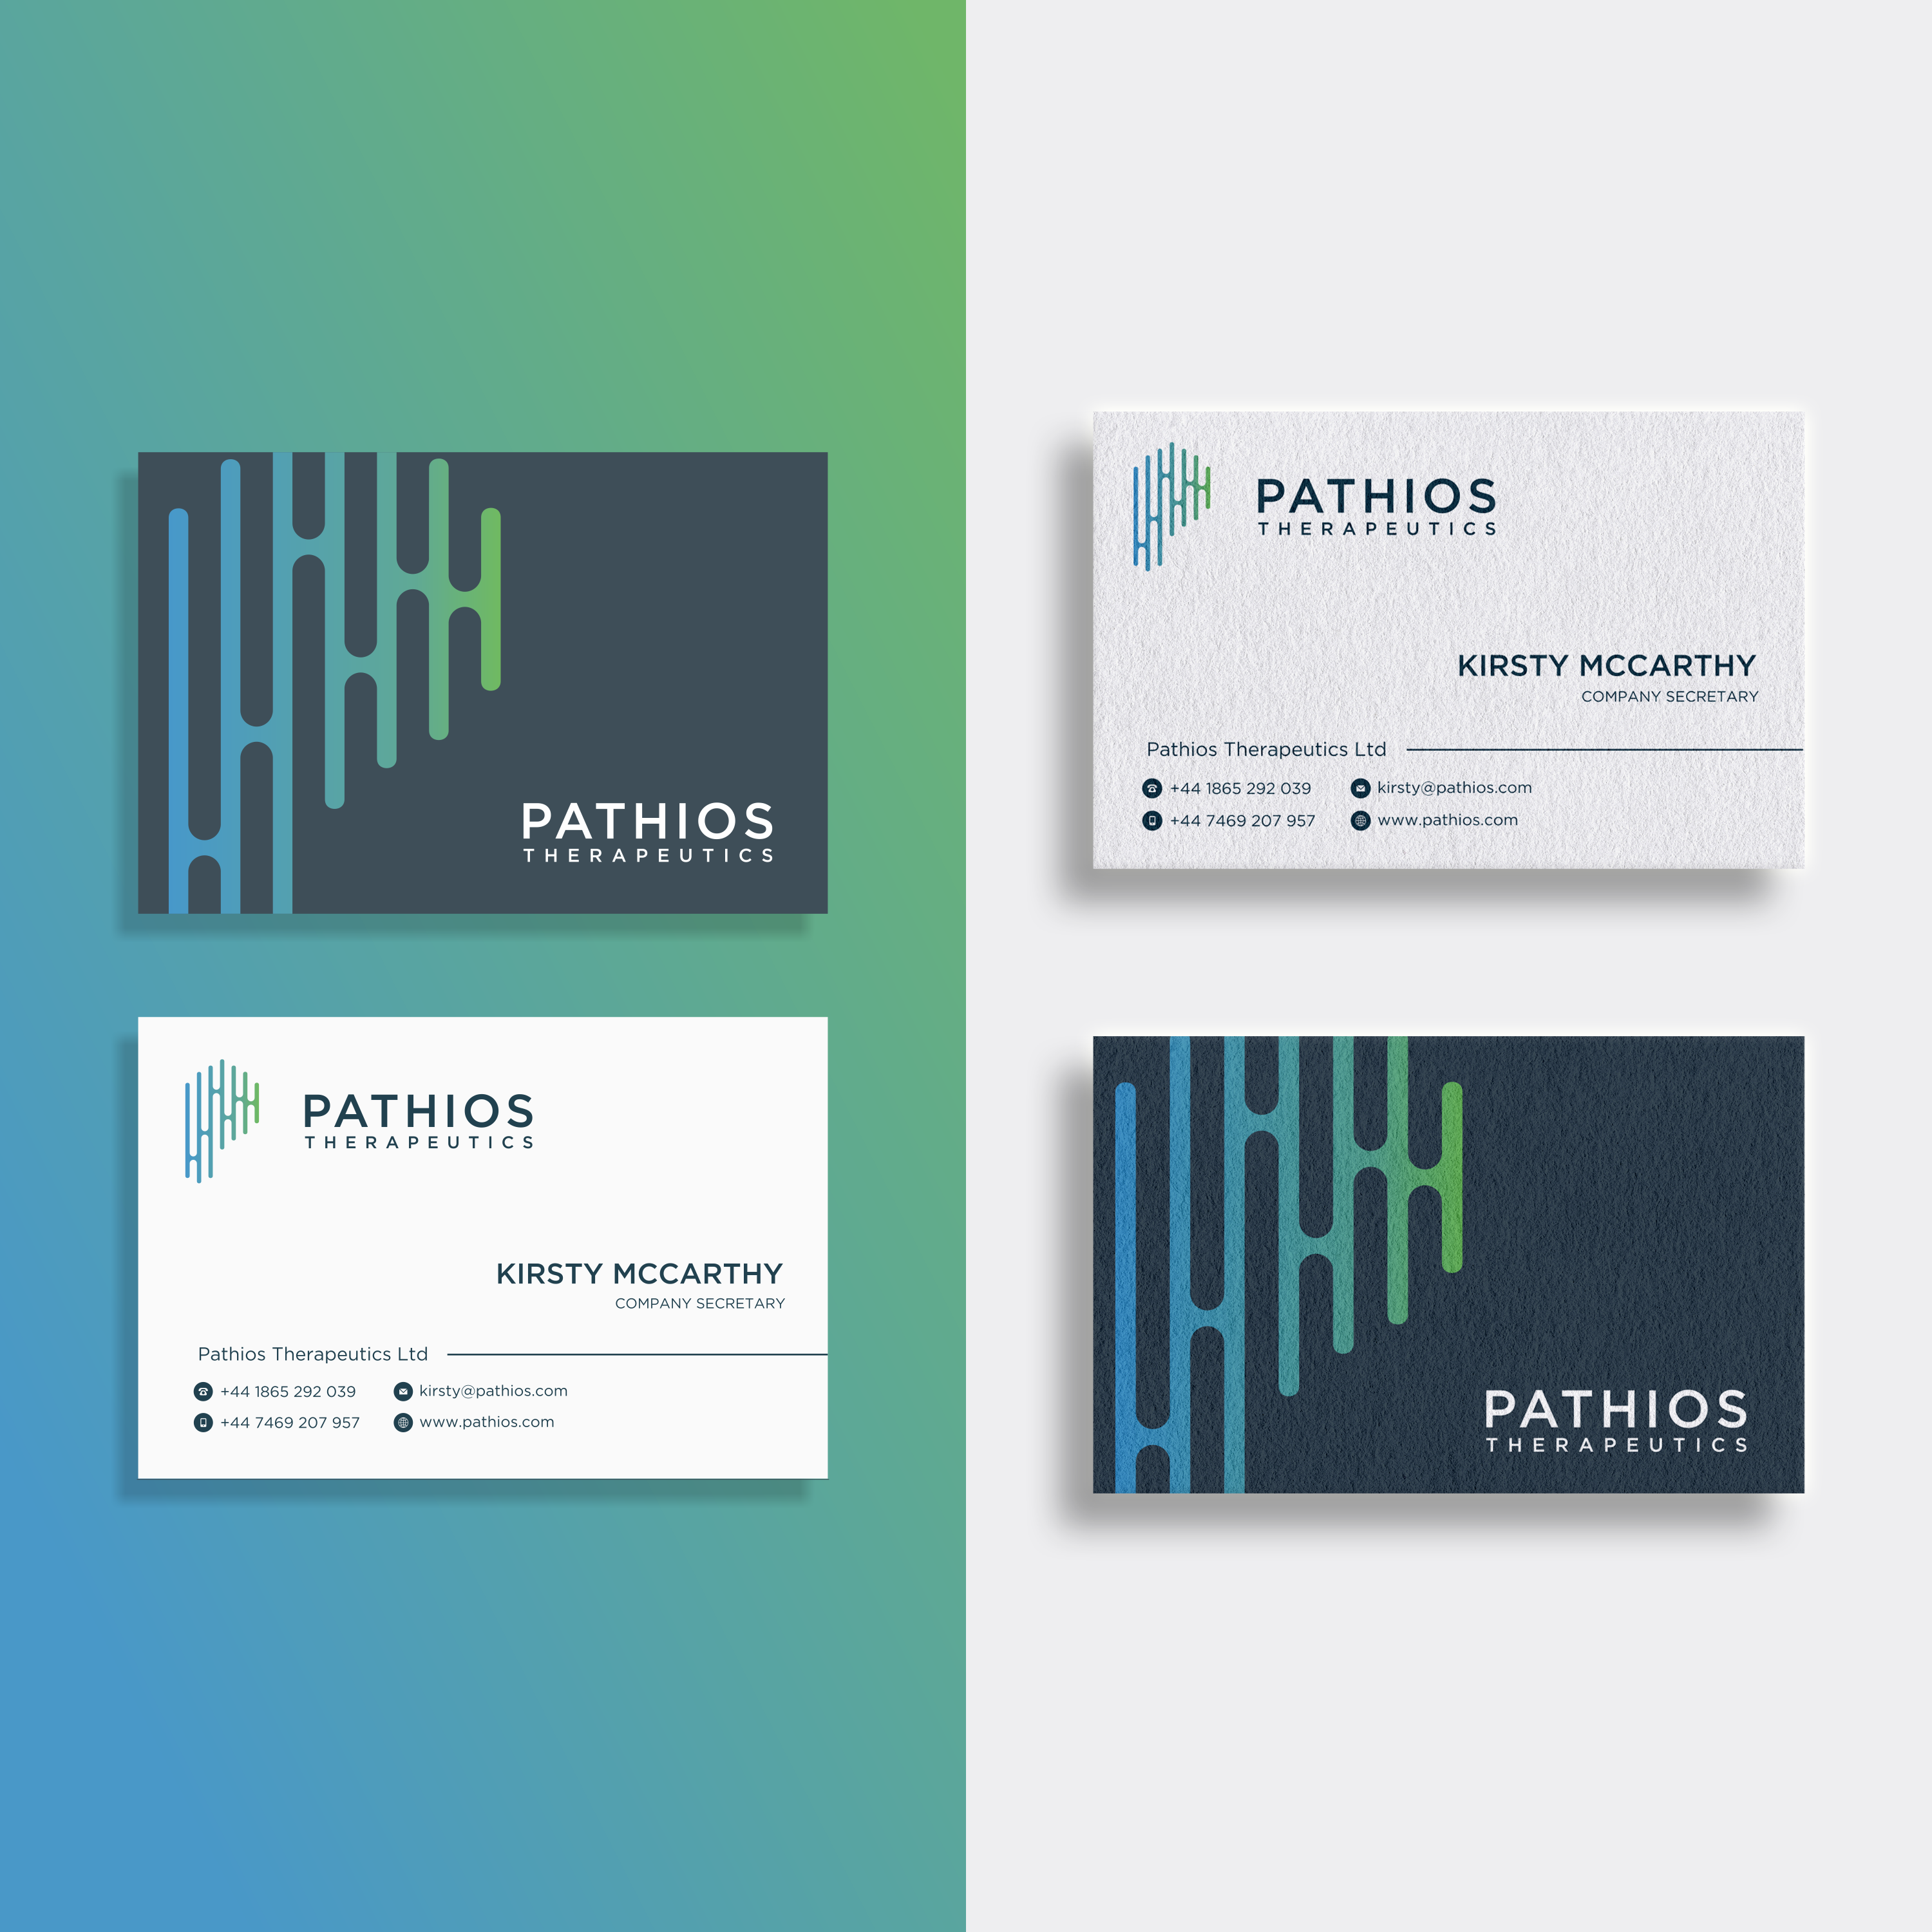 Changing a letterhead and business card template